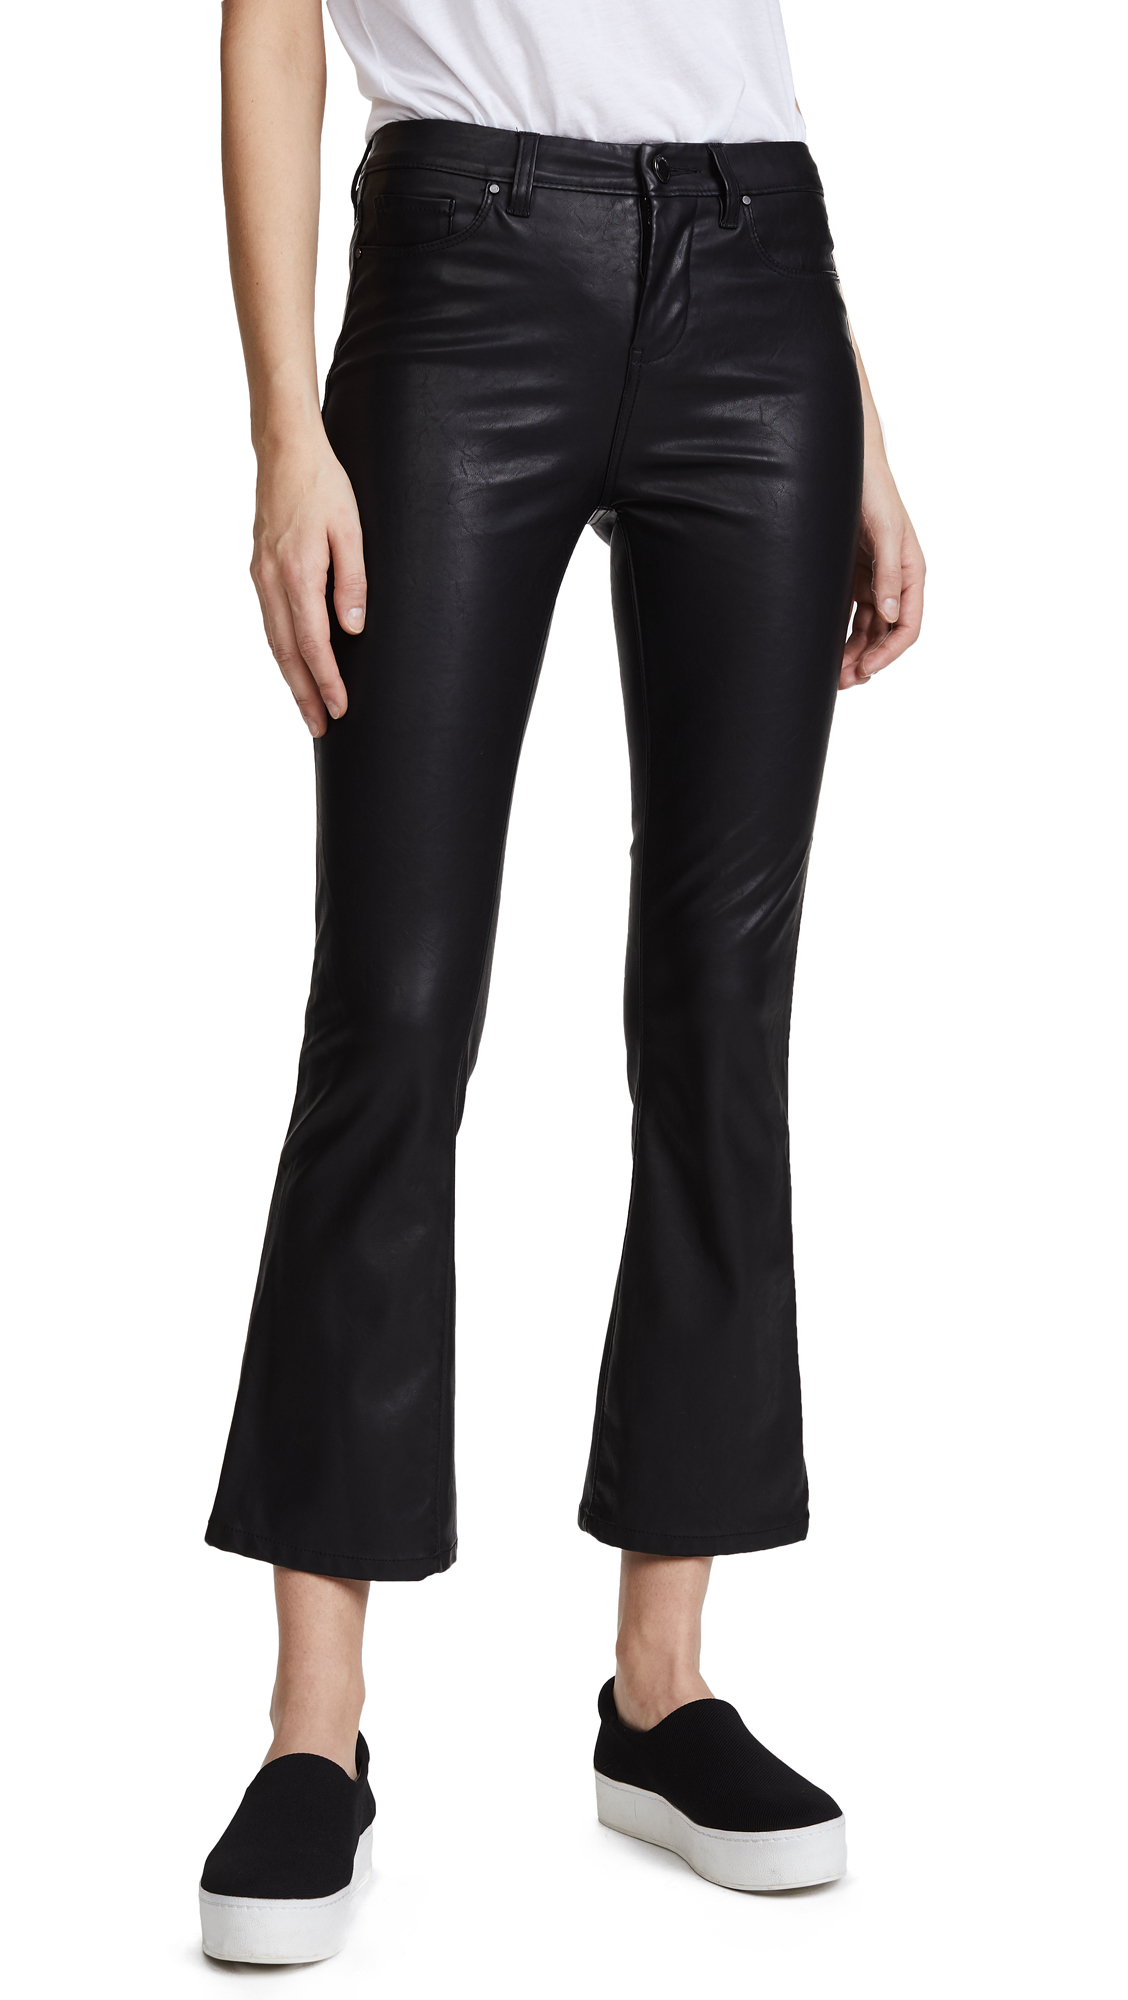 Blank Denim Vegan Leather Crop Kick Flare Pants - Daddy Soda